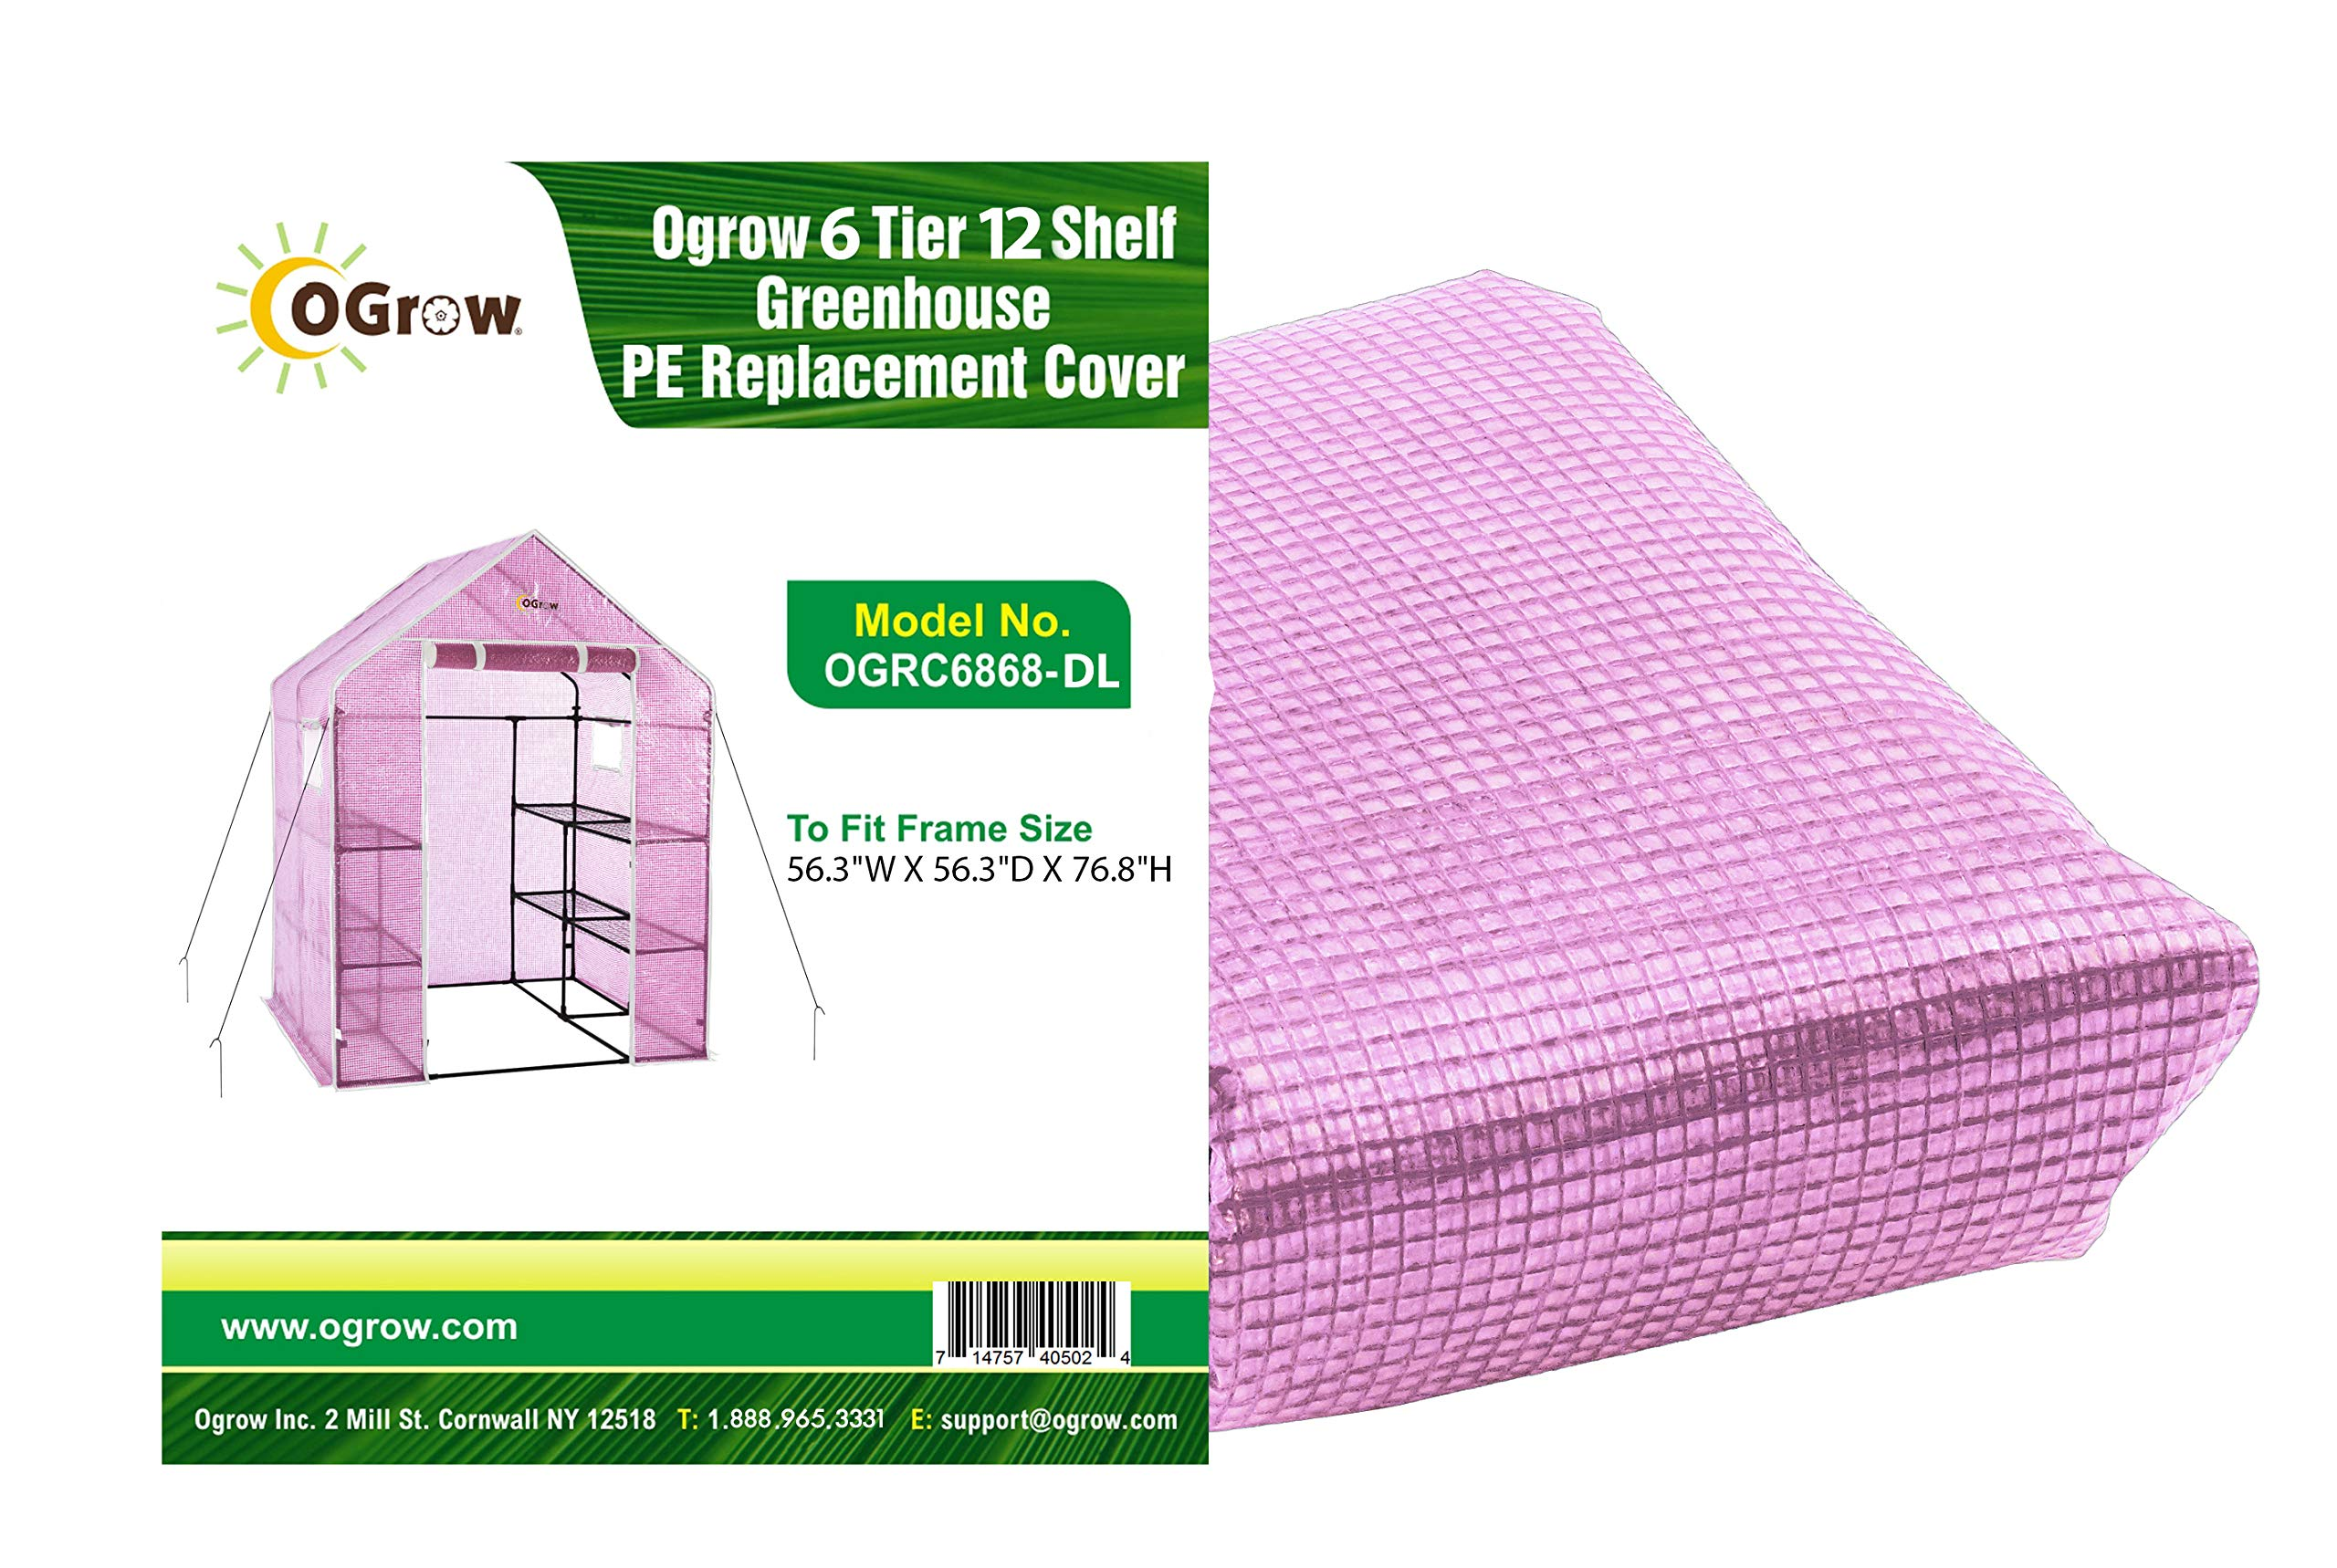 OGrow OGRC6868-D Lilac Greenhouse Replacement Cover, Fit for Frame Size 56.3'' w X 56.3'' d X 76.8'' h by OGrow (Image #1)